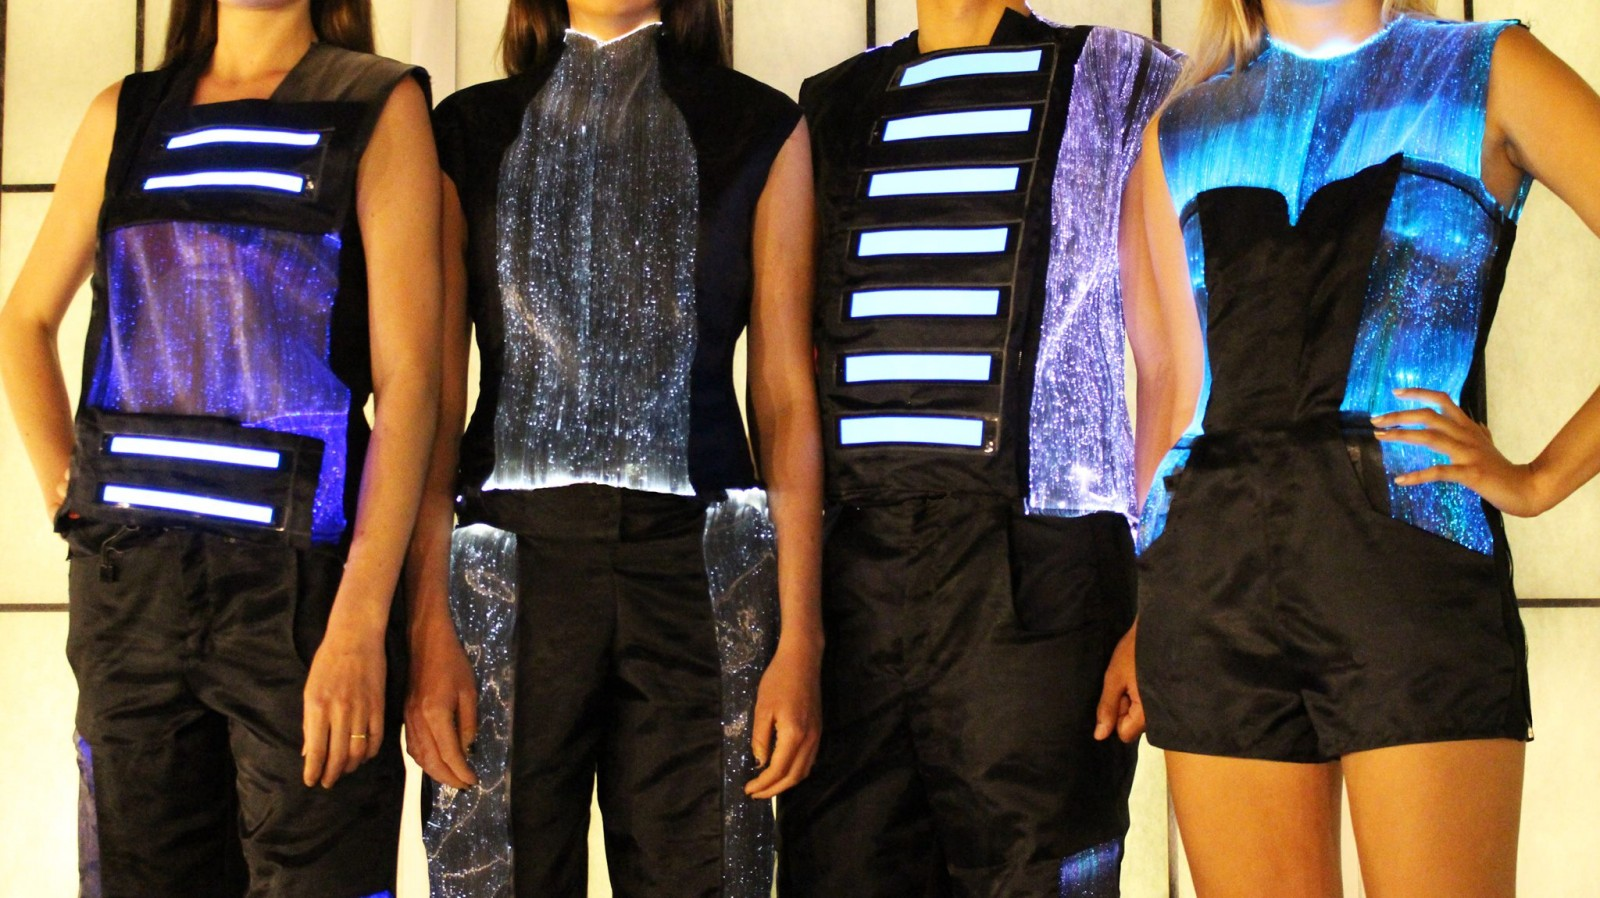 Models wearing LED lit clothing.